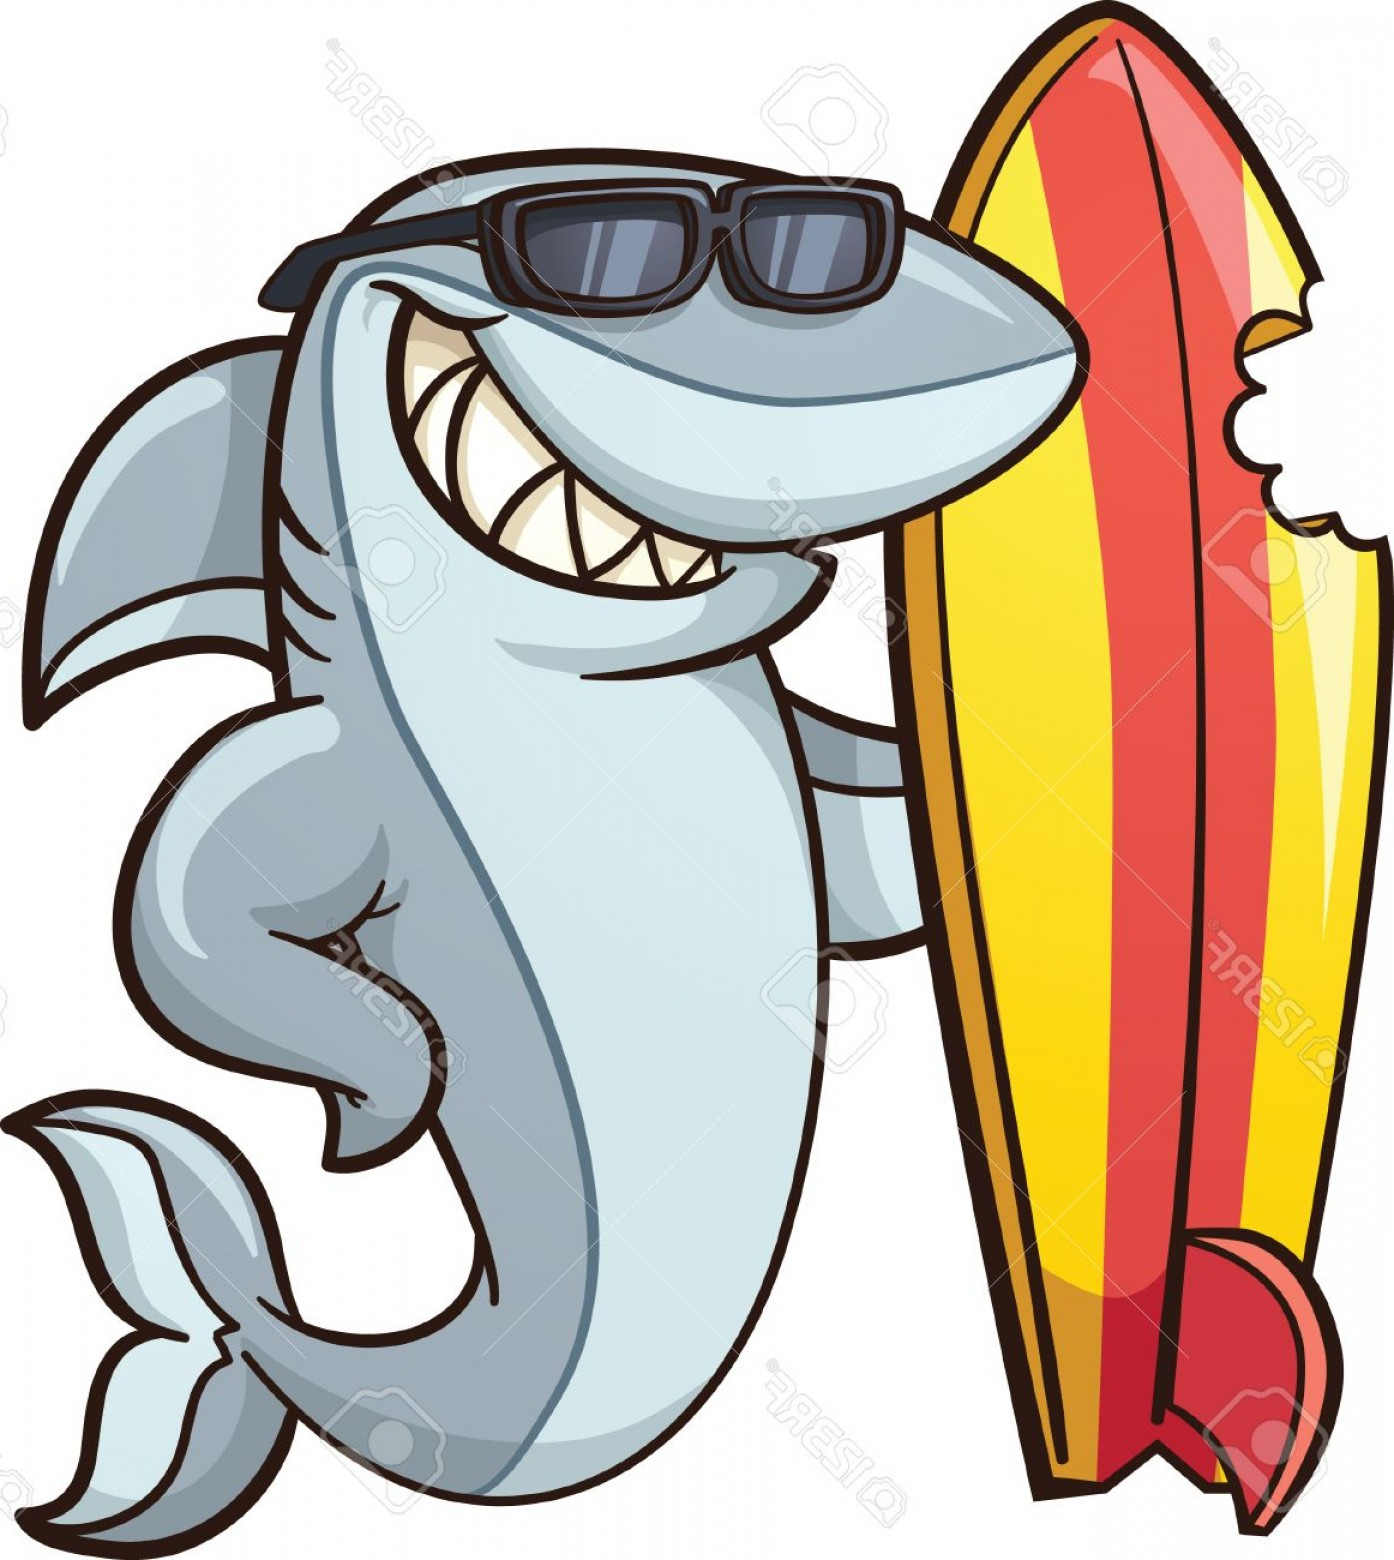 Vector Cartoon Free Clip Art: Photostock Vector Cartoon Shark With A Bitten Surfboard Vector Clip Art Illustration With Simple Gradients All In A Si